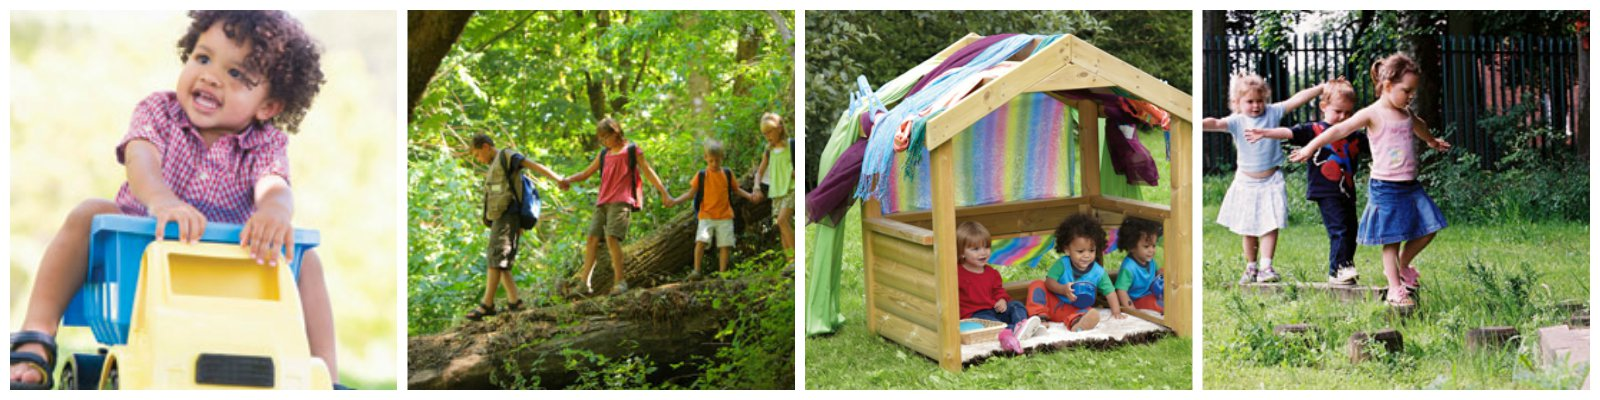 Outdoor kids Collage